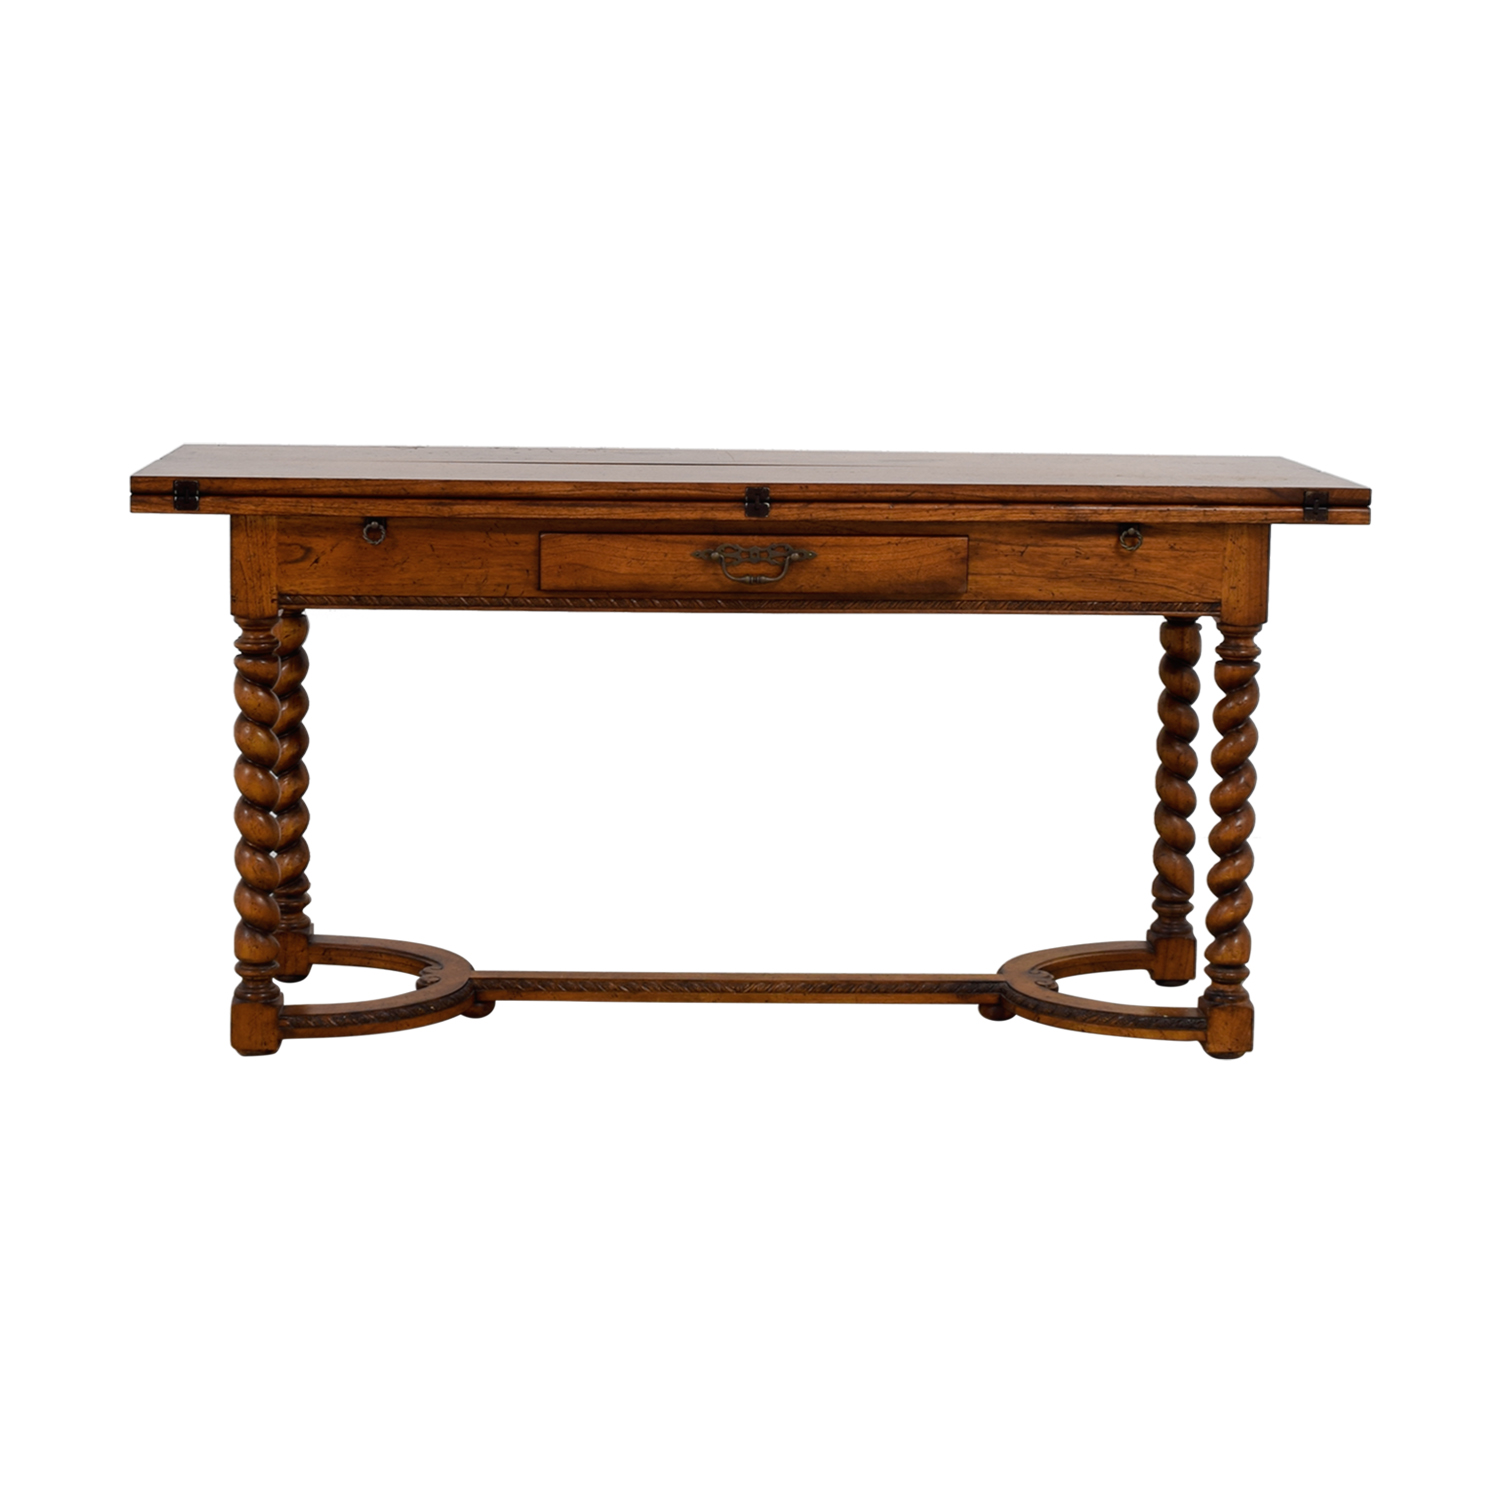 Ralph Lauren Ralph Lauren Single Drawer Refractory Table second hand